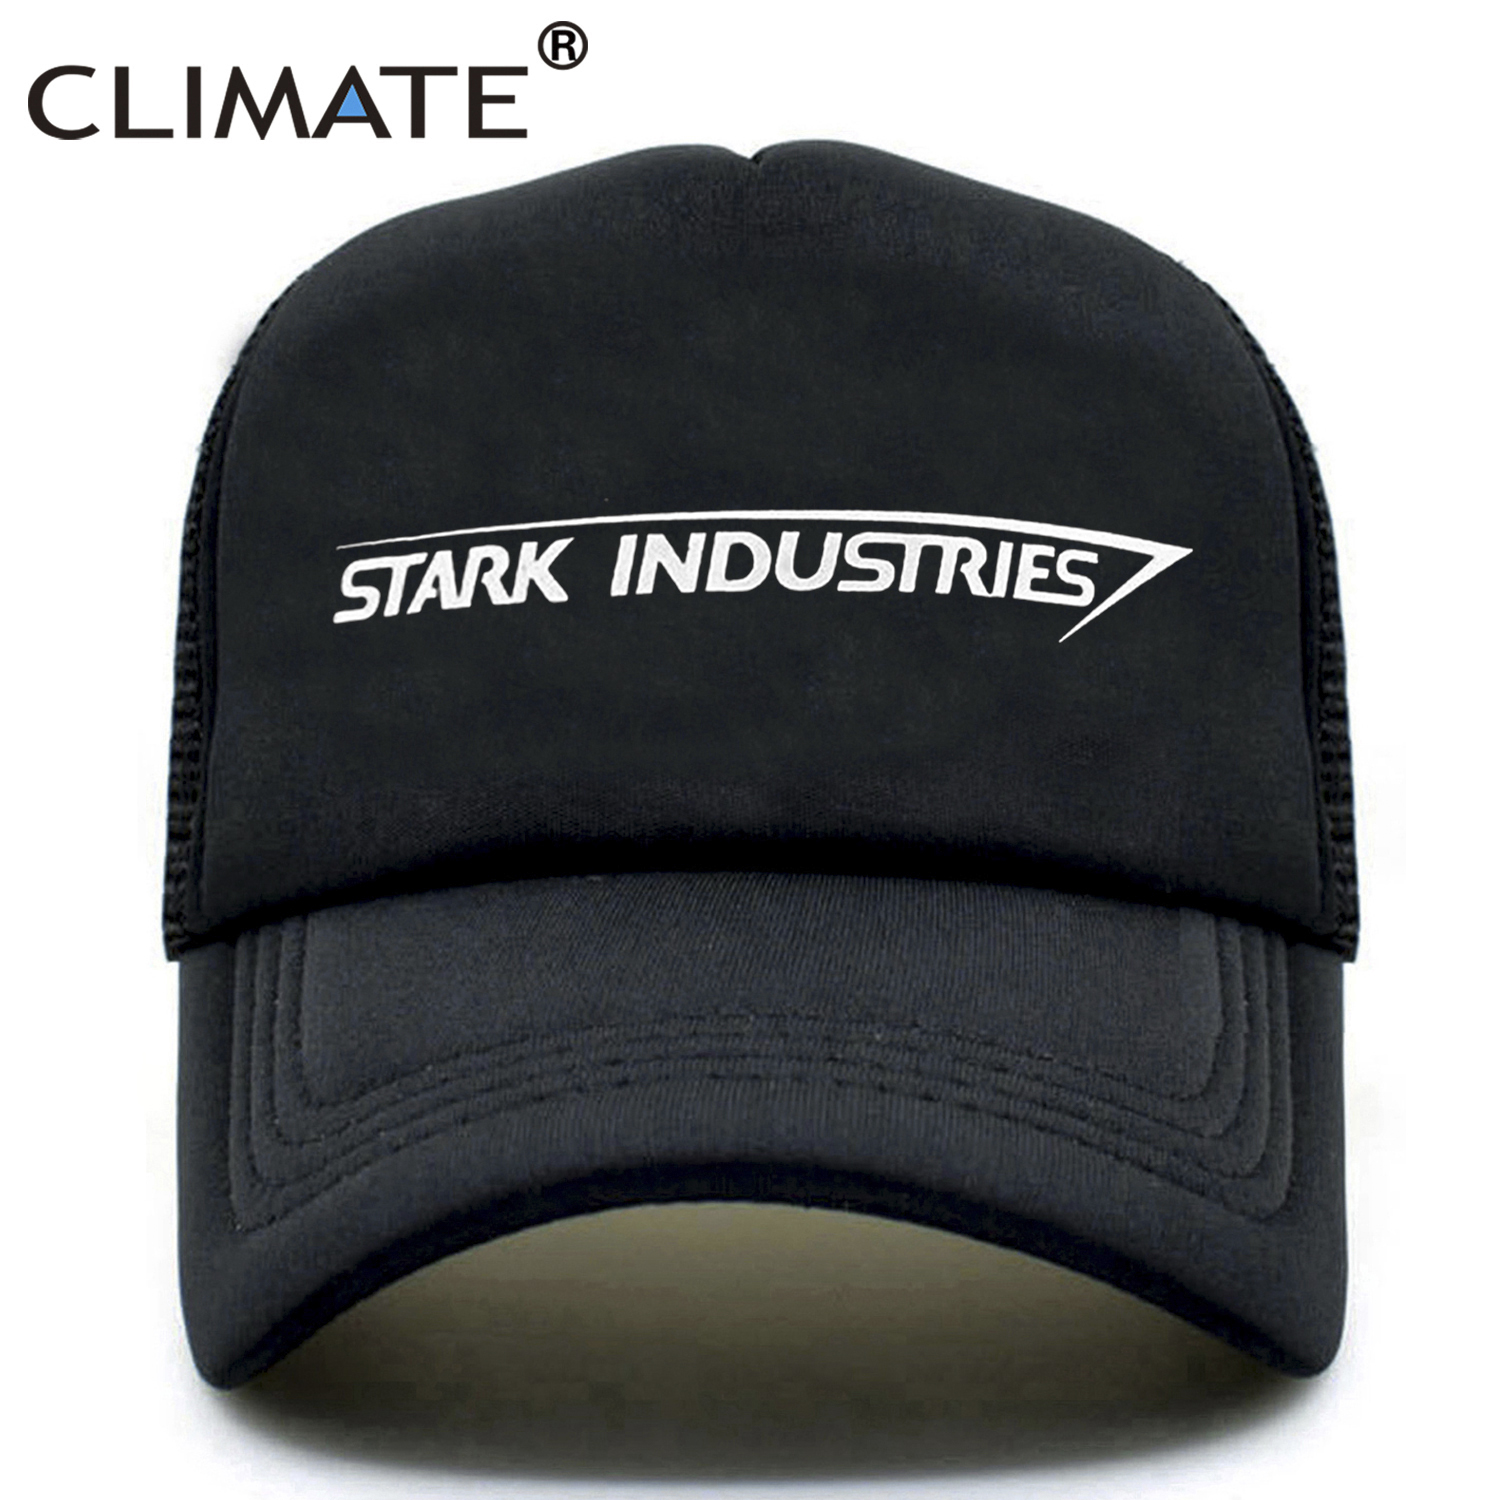 CLIMATE Stark Industries Trucker   Cap   Iron Man   Cap   Hats Tony Stark Avengers Summer Hip Hop Mesh Cool   Caps   Hat for Men Women